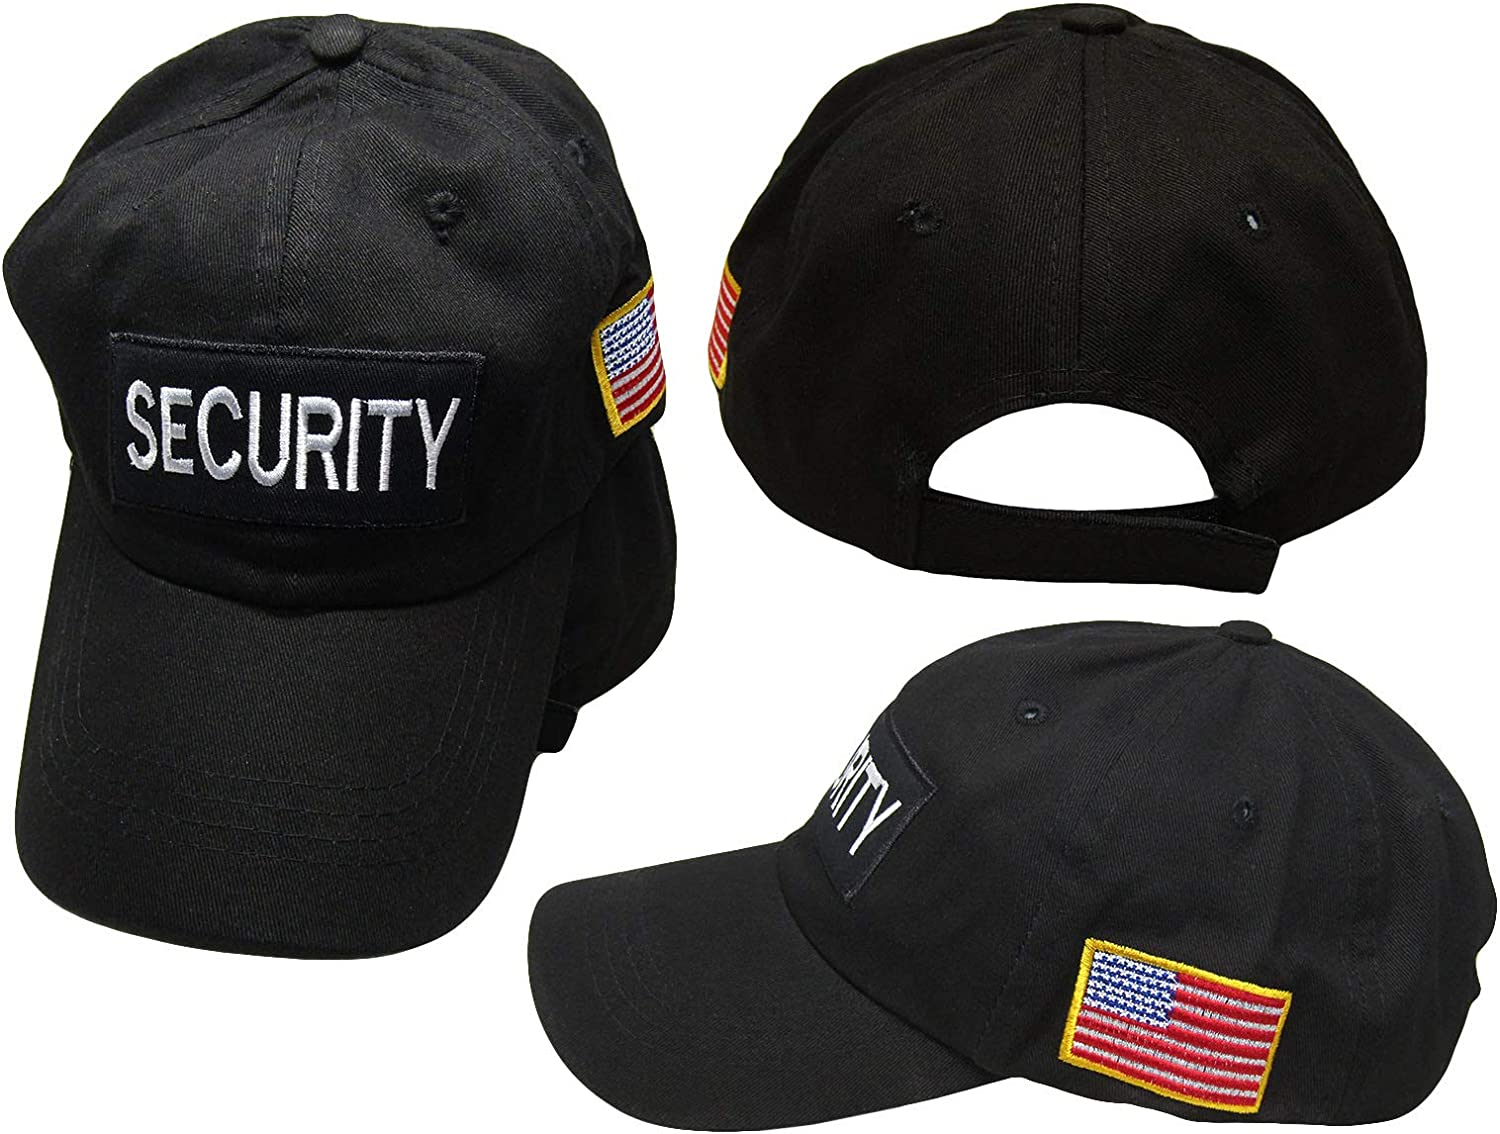 Security Official Black Patch USA Flag On Side Embroidered Baseball Hat Cap (RUF)